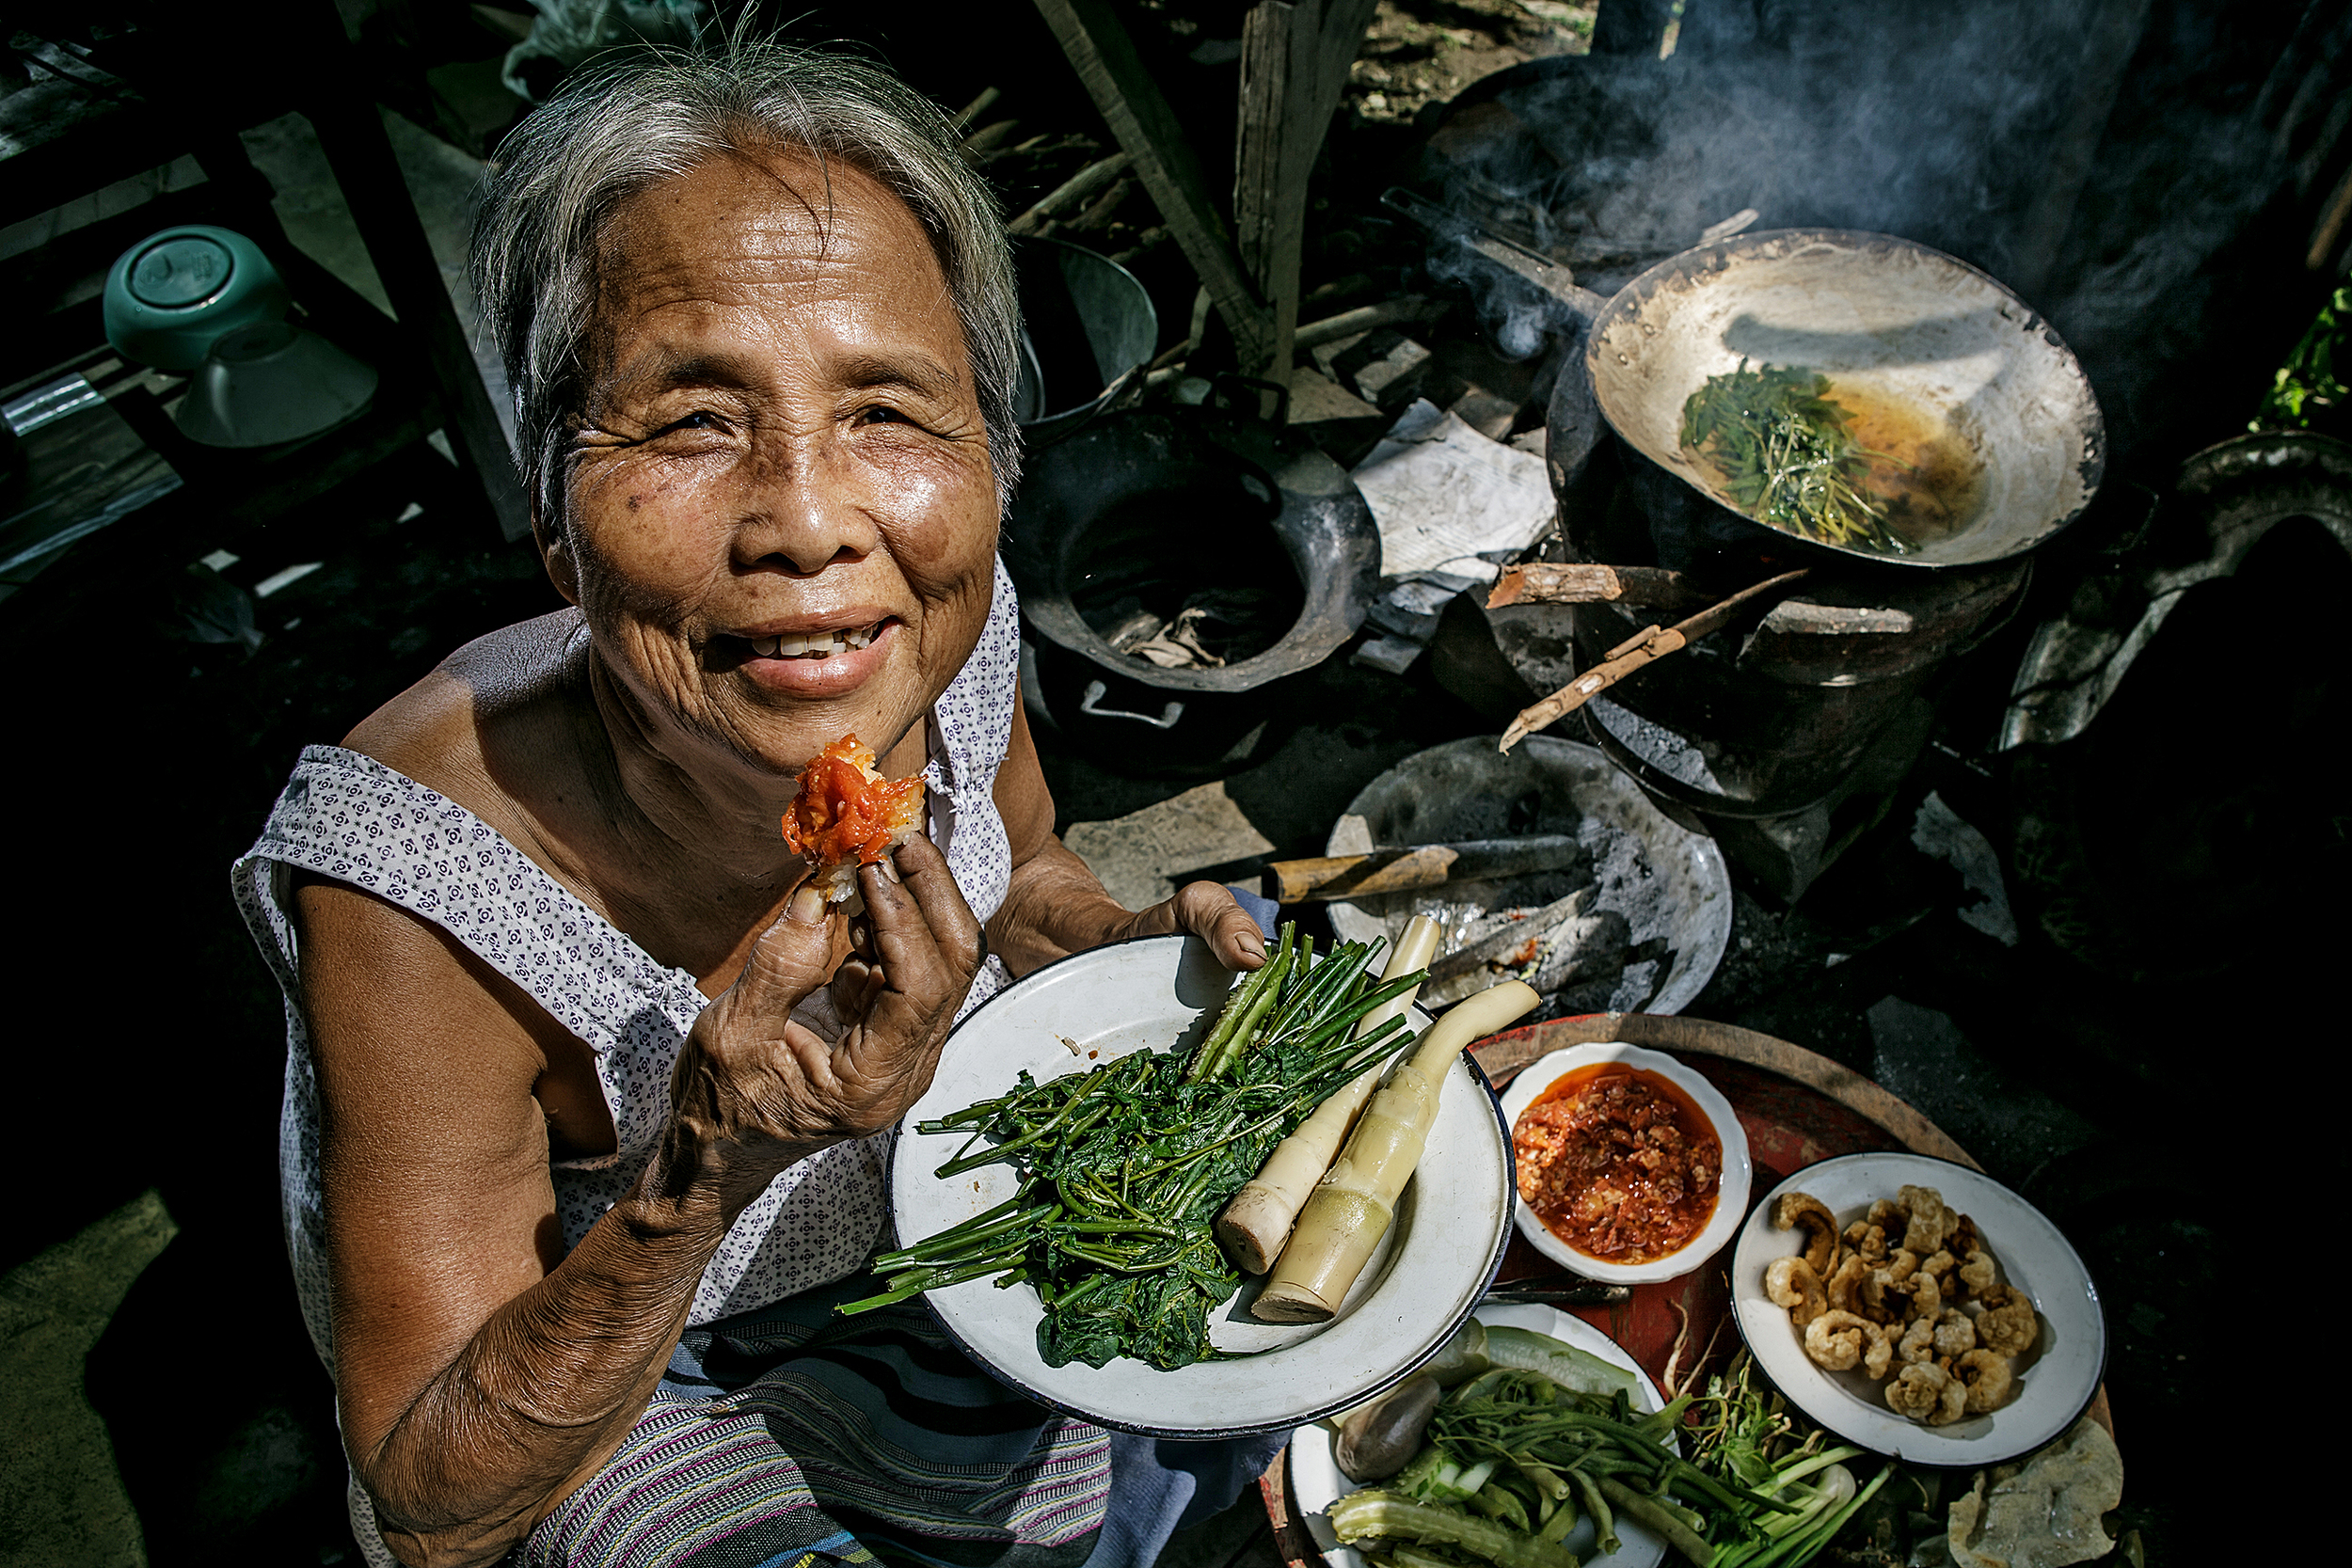 A local woman eating food